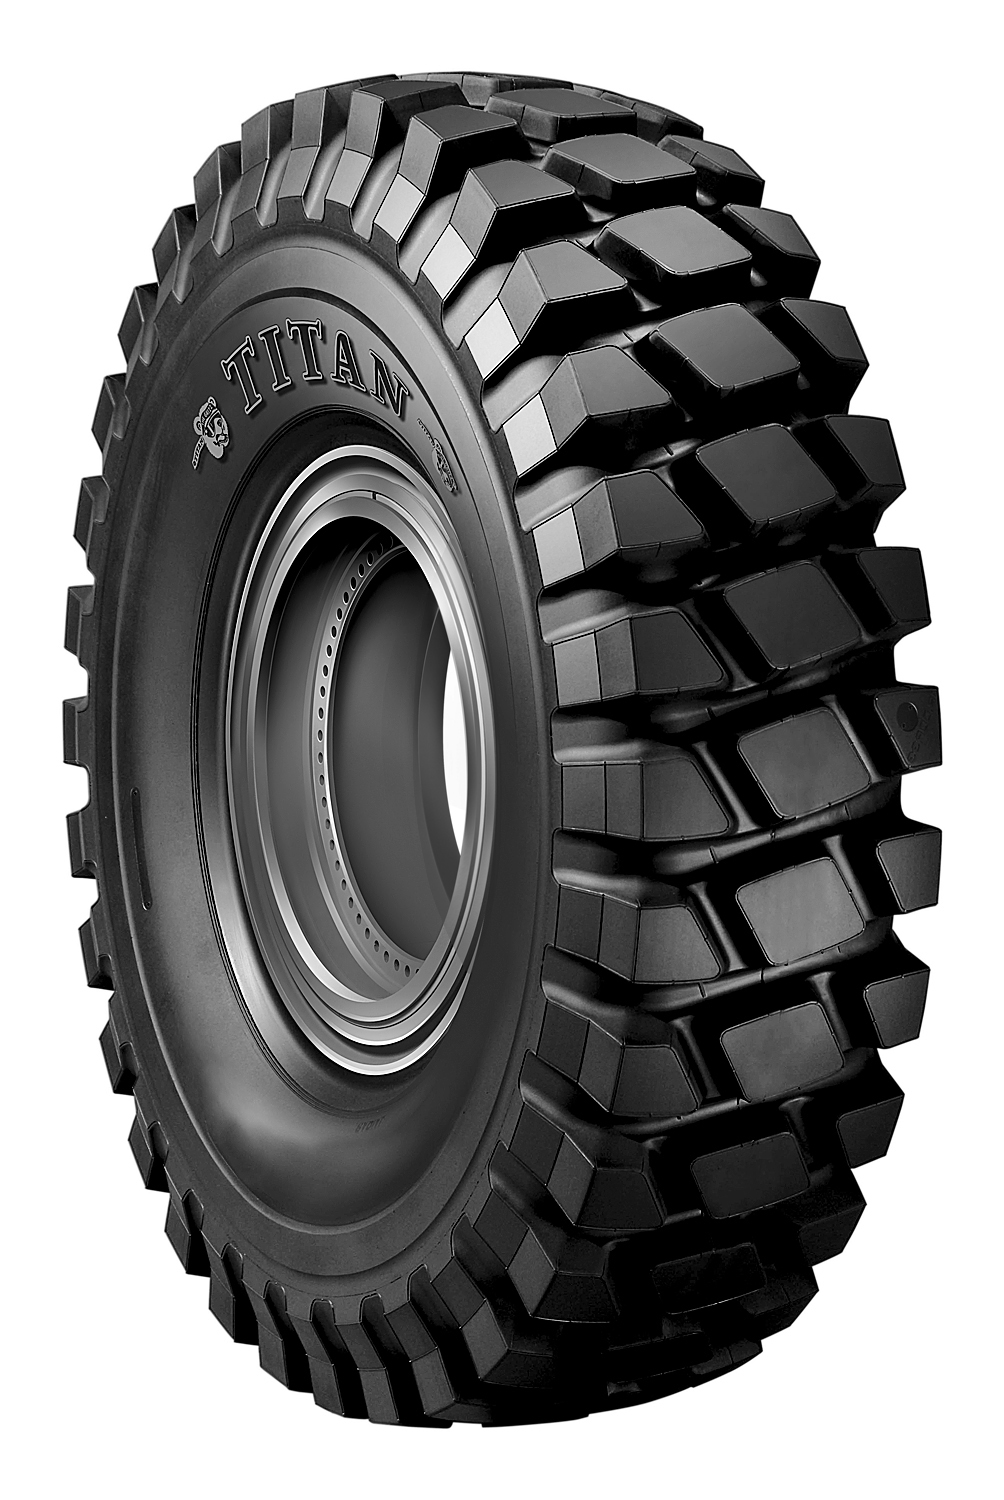 Tires clipart truck tire Tire Tire's tire truck Truck